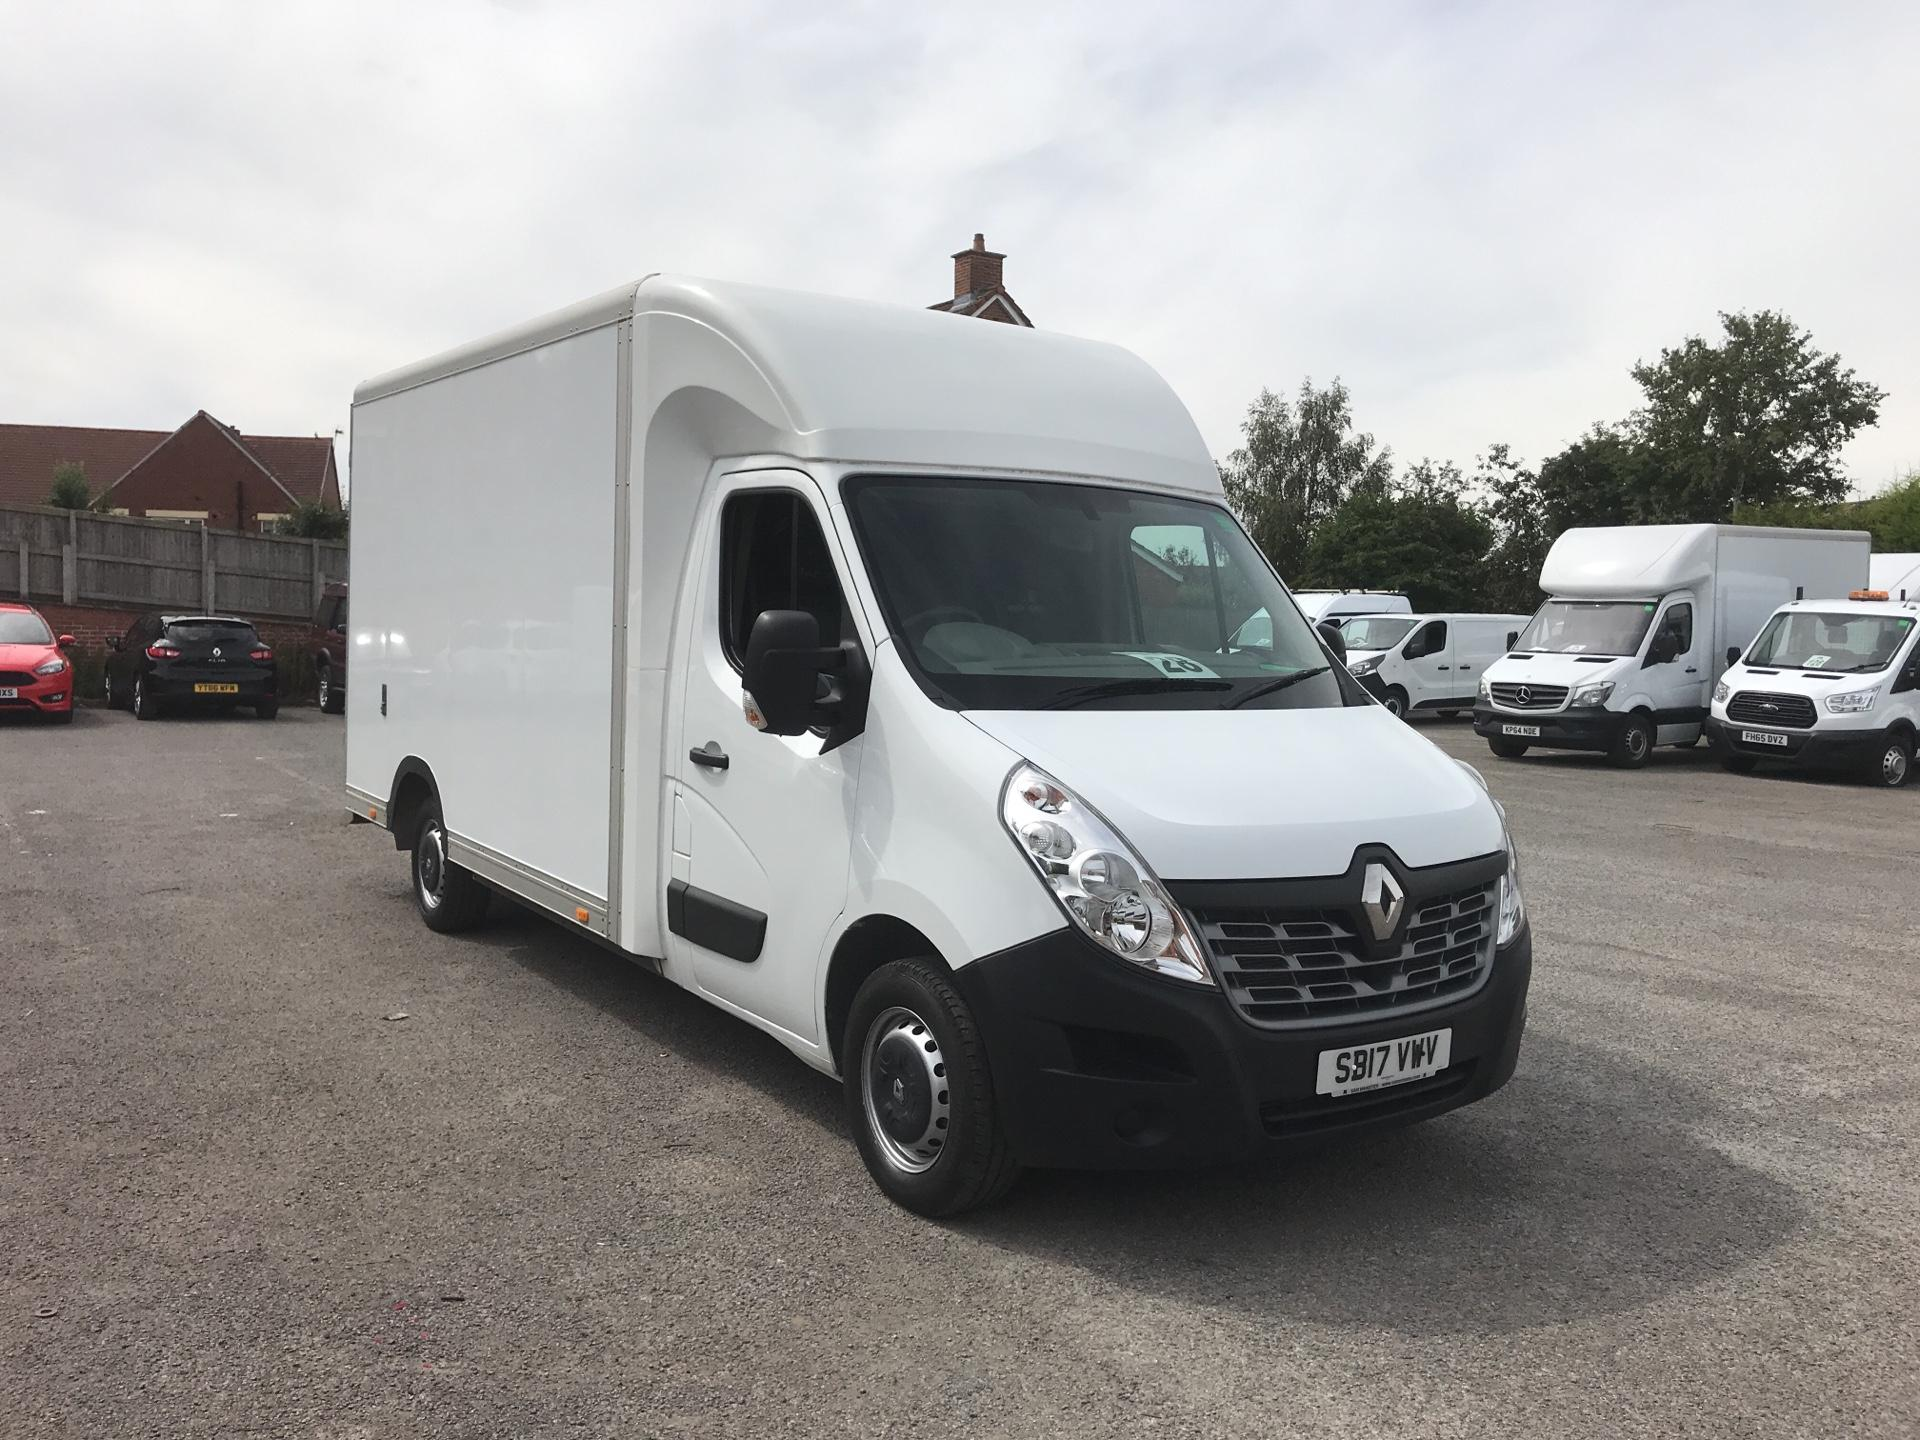 2017 Renault Master Ll35dci 100 Luton Body Euro 4